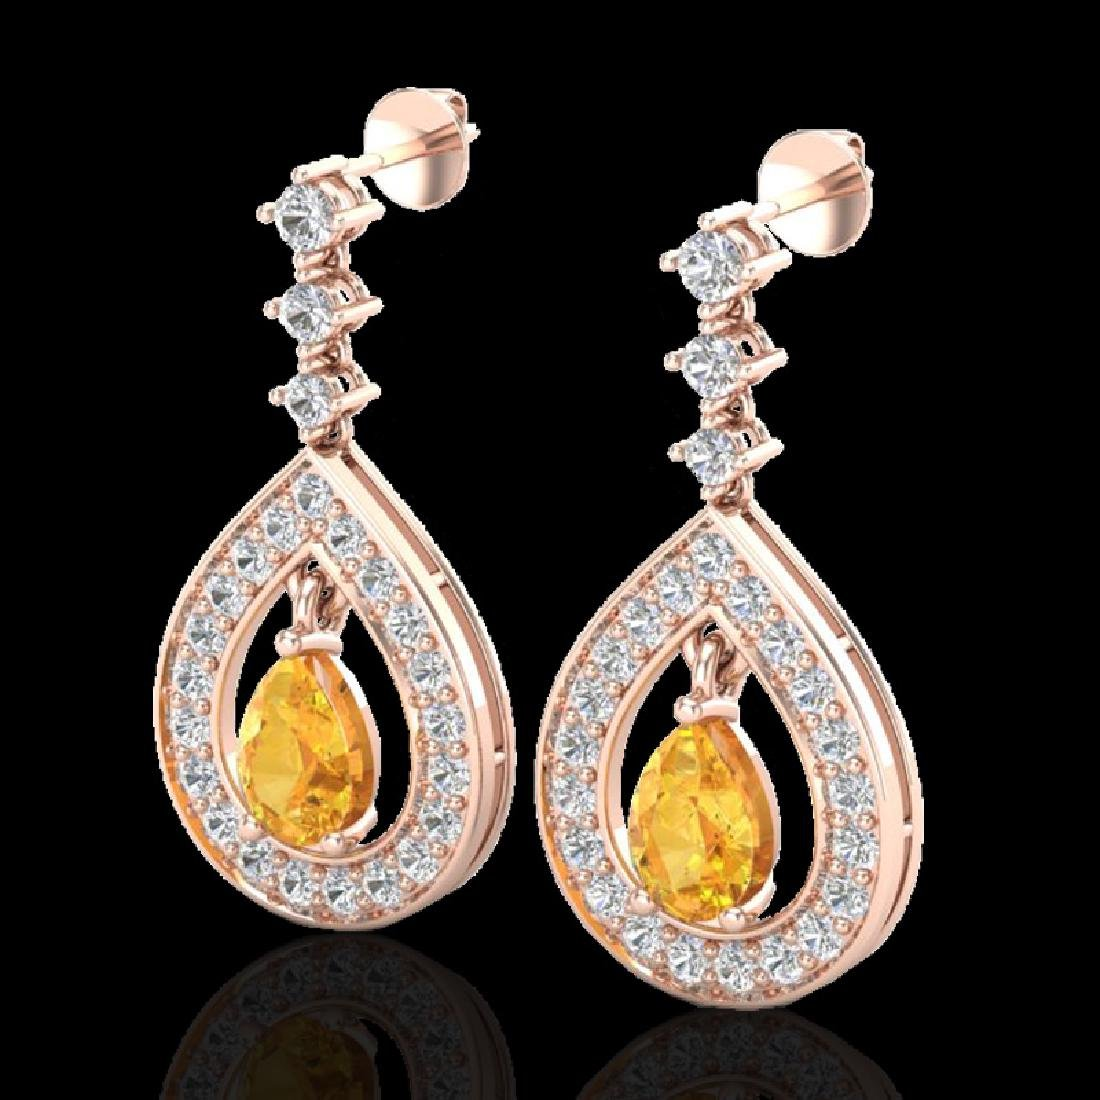 2.25 CTW Citrine & Micro Pave VS/SI Diamond Earrings